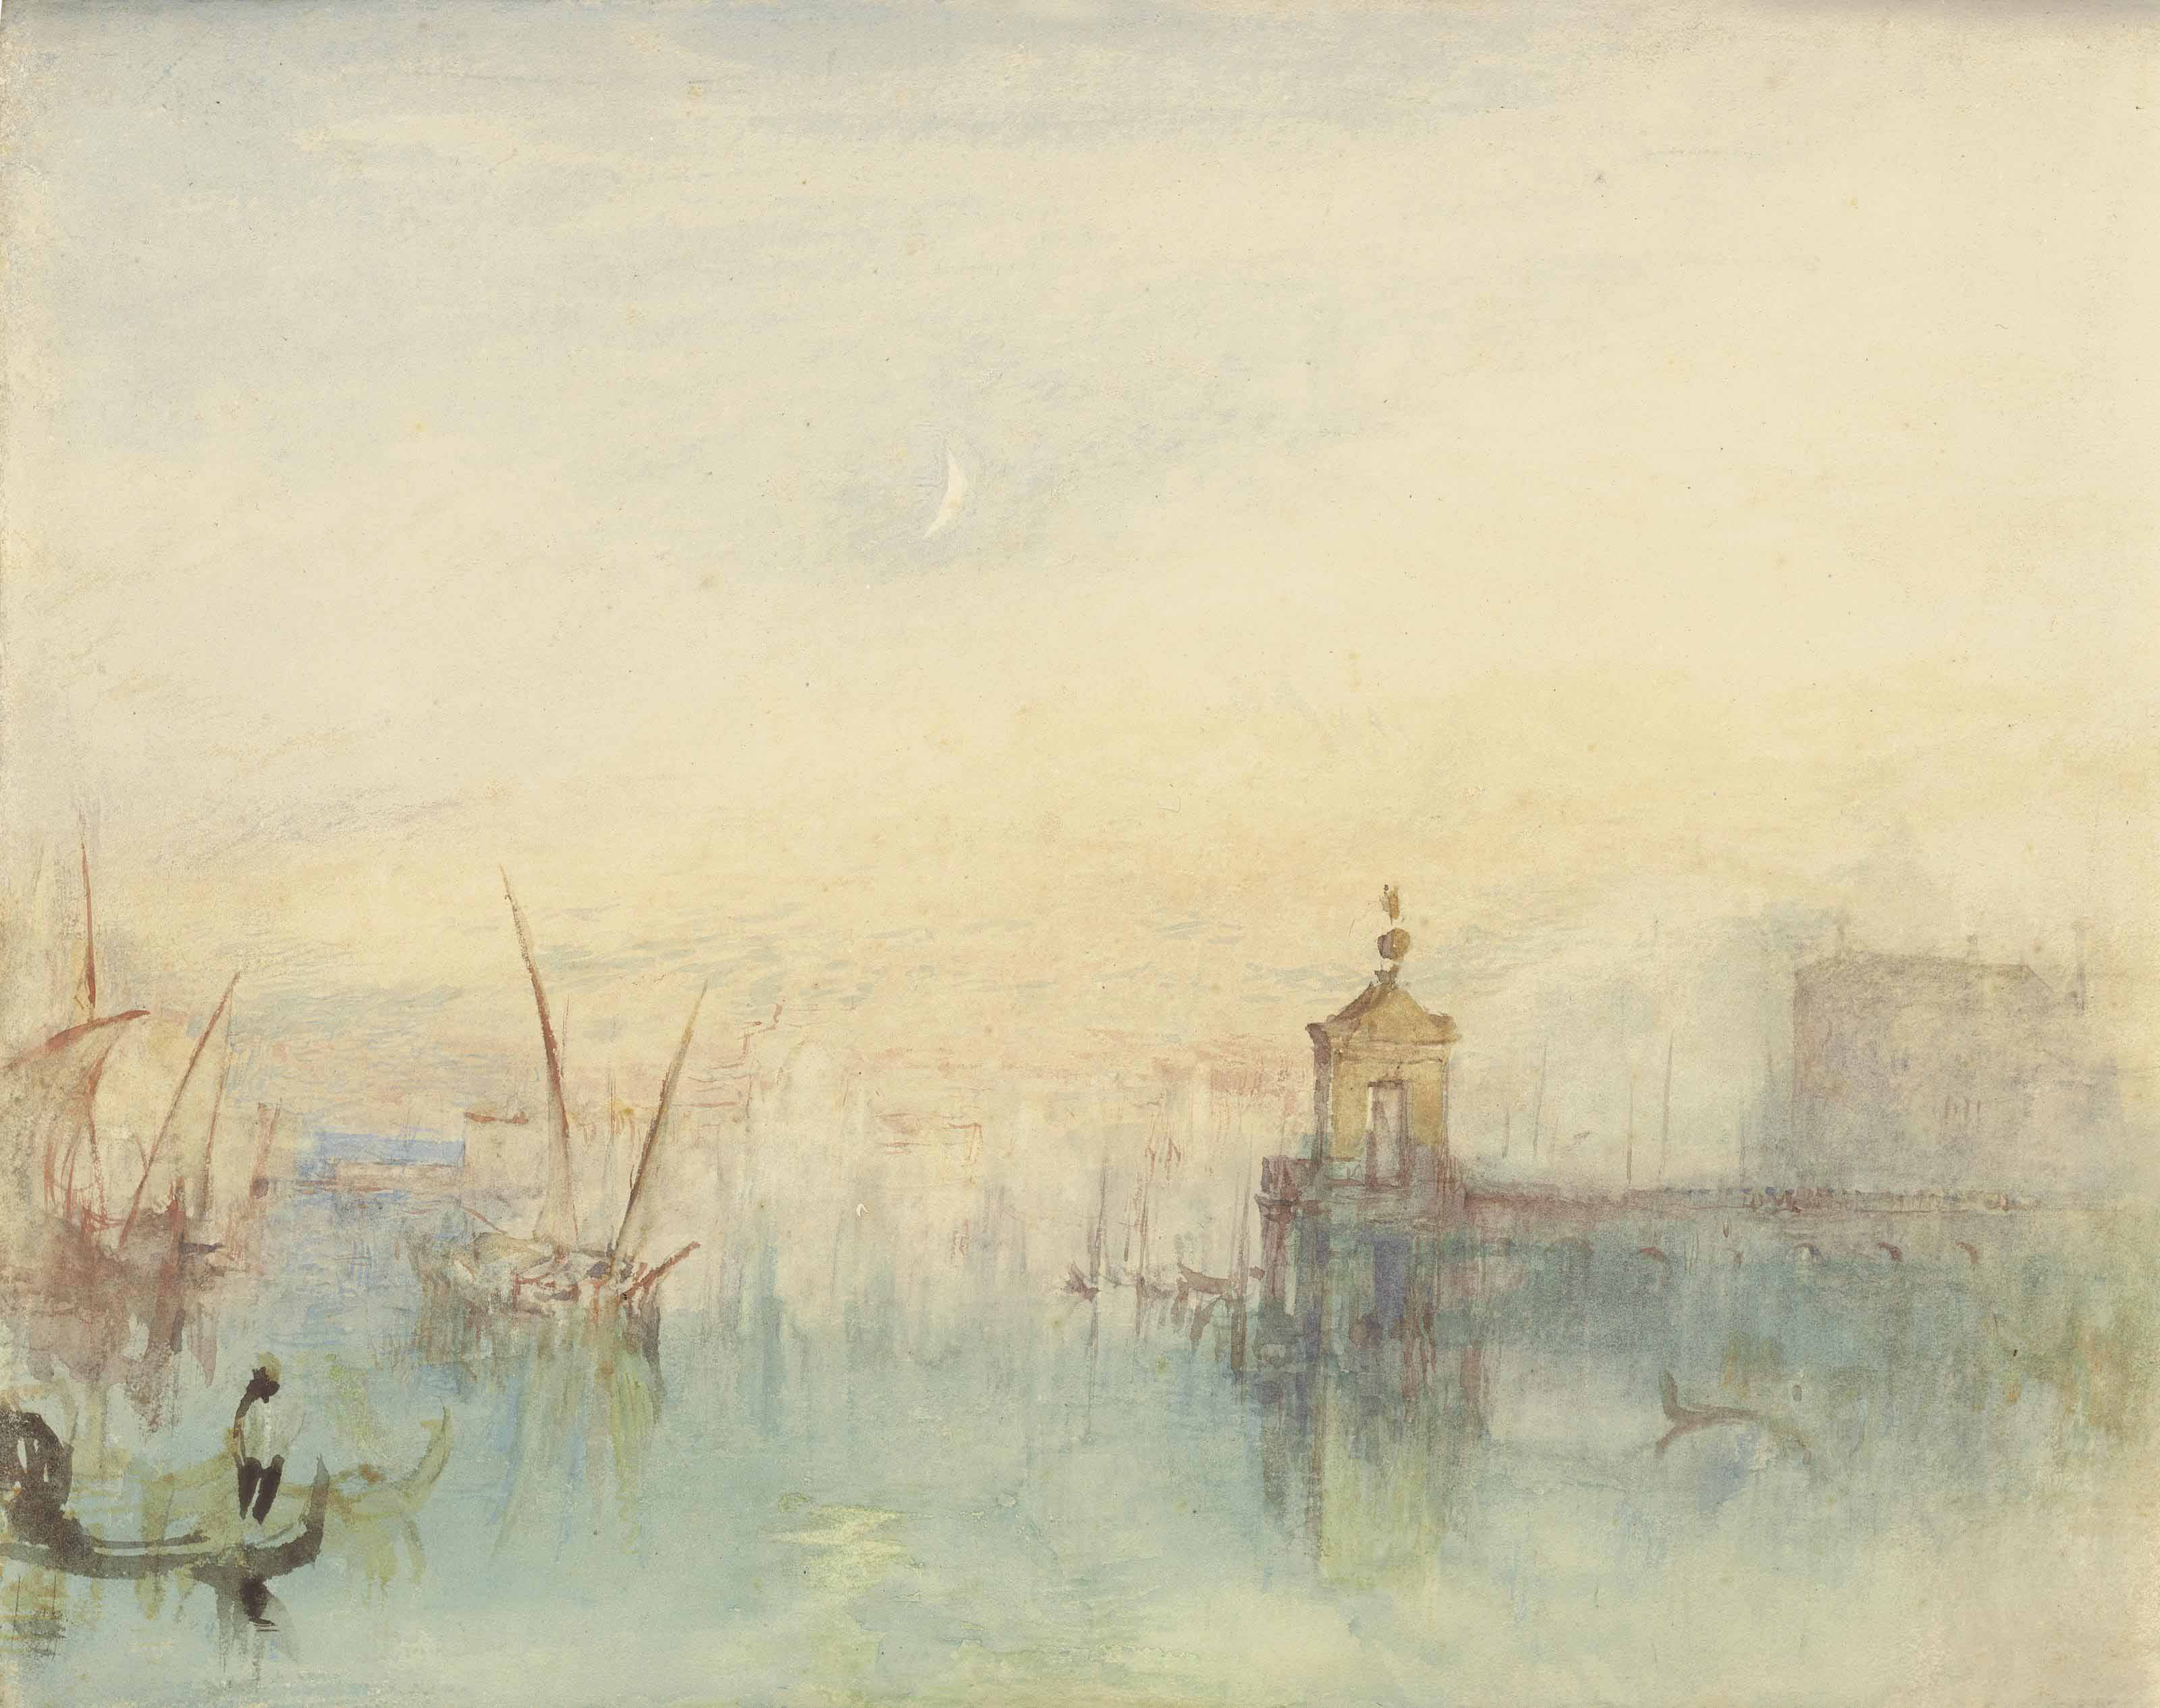 Joseph Mallord William Turner, R.A. (London 1775-1851)